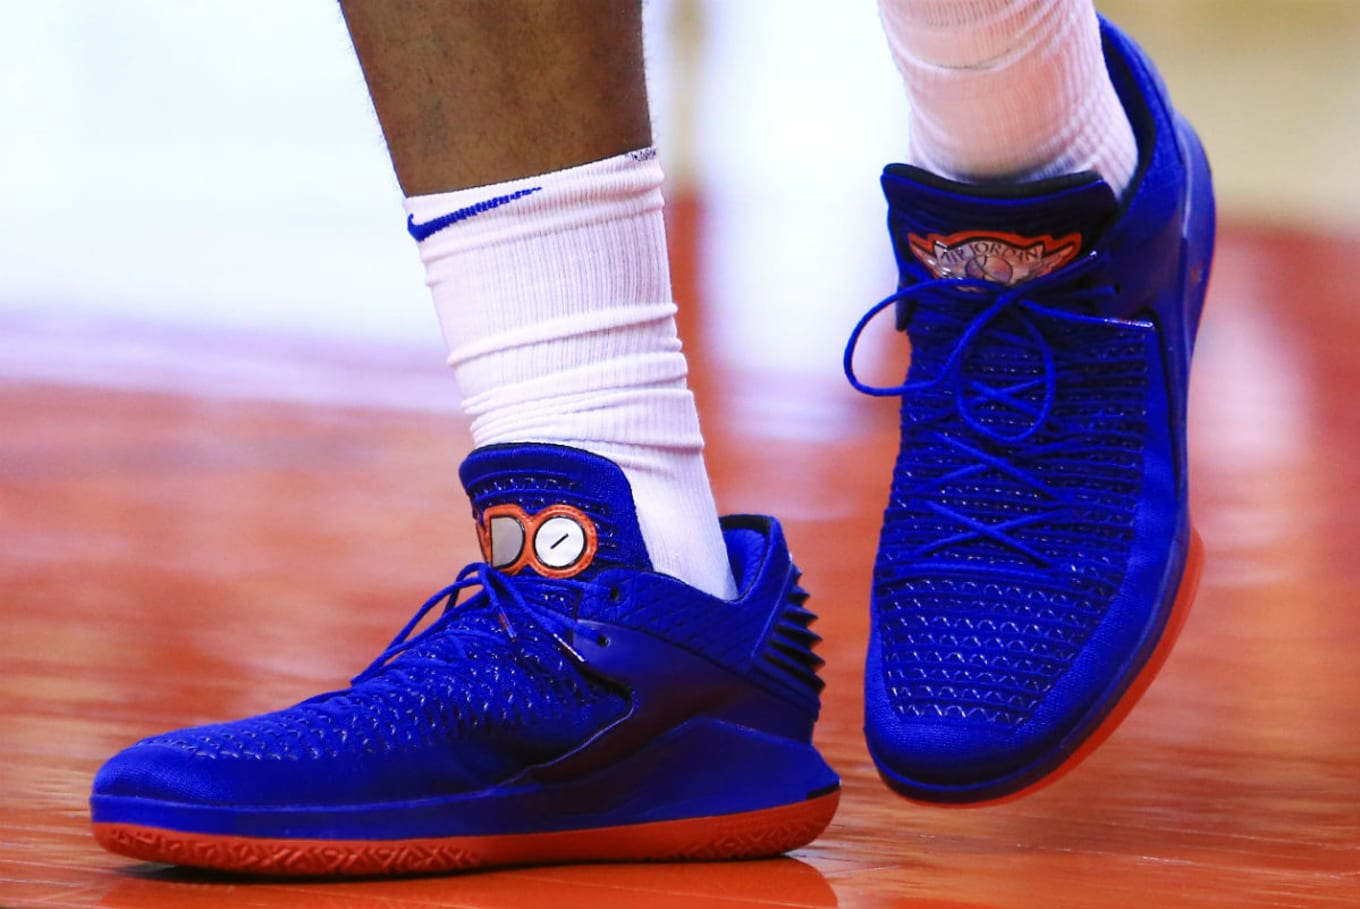 6c9b2f8fbf8 ... Andre Drummond Goes Low with Air Jordan 32 PE. Pistons colors on the  big man's exclusives.